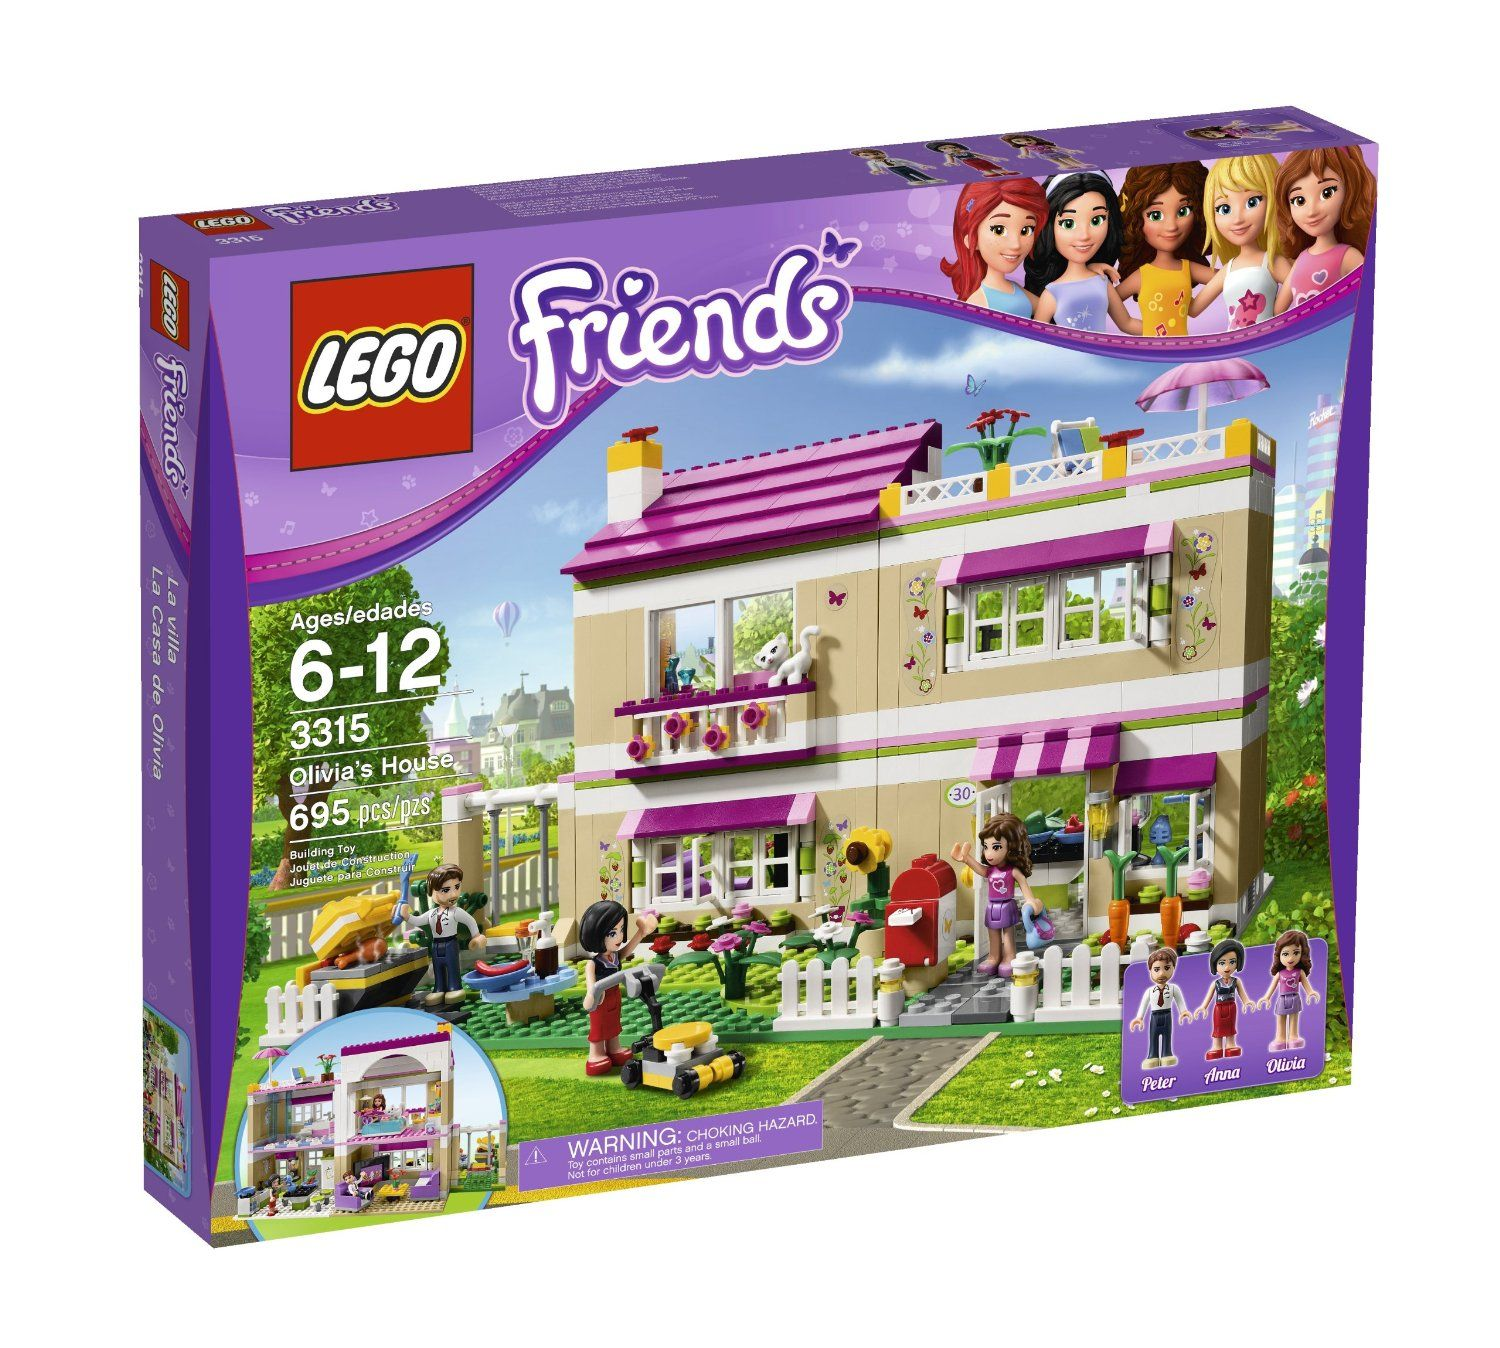 Best Gifts For 6 Year Old Girls In 2017 Lego Friends Sets Lego Friends Friends Set